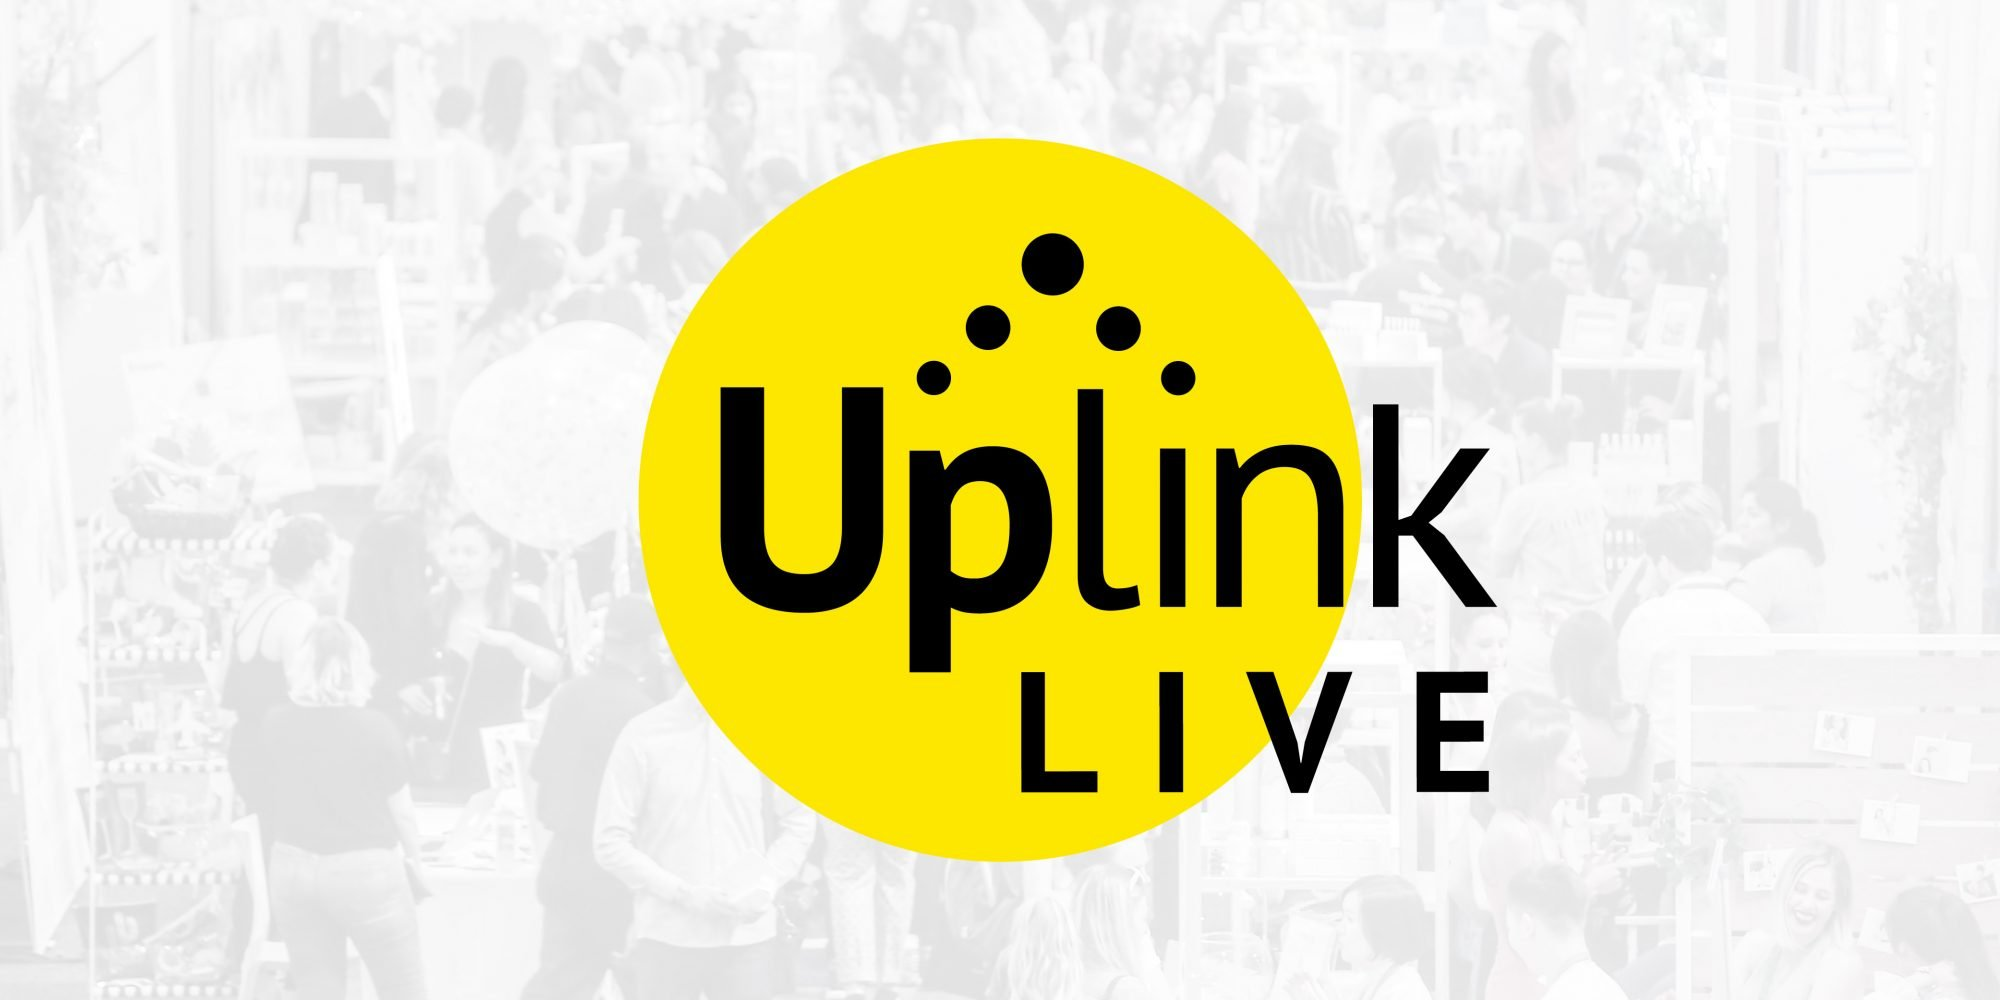 Indie Beauty Expo Producer Launches Uplink Live To Connect Manufacturers, PR Firms, Logistics Companies And More With Indie Brands